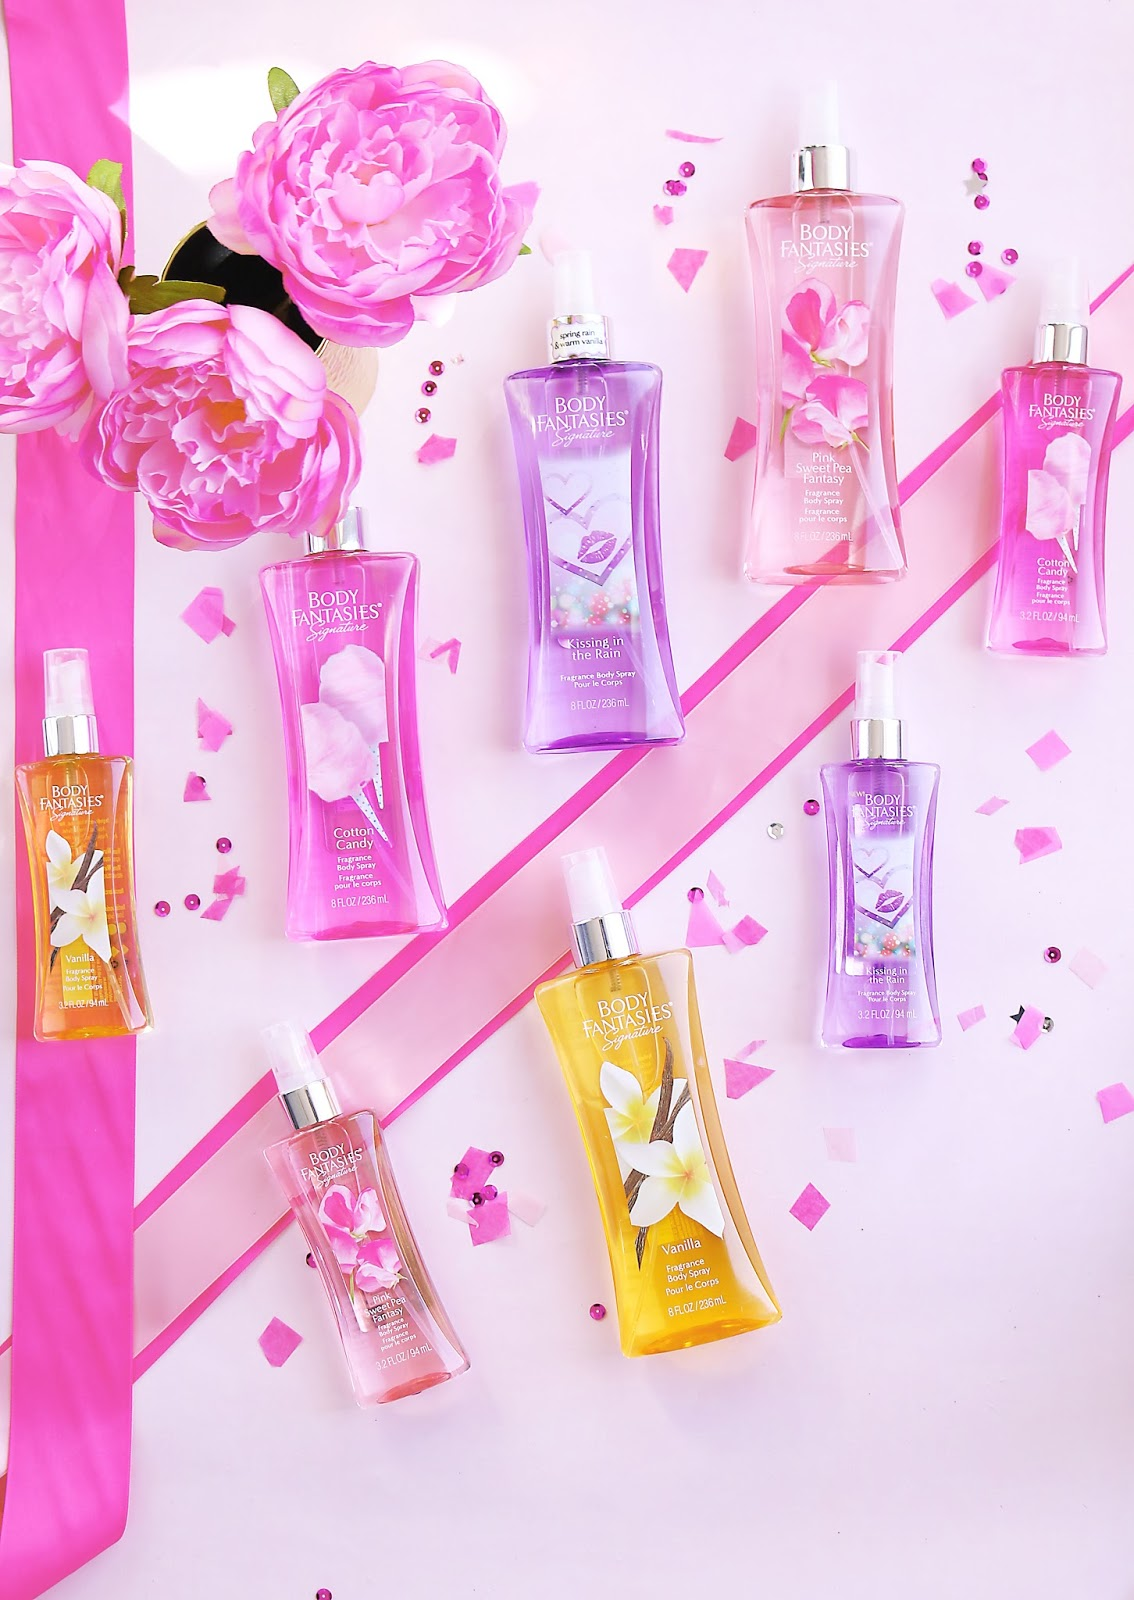 Beauty, Drugstore, Fragrance, body fantasies, Body fantasies UK, new body fantasies fragrances, Drugstore beauty